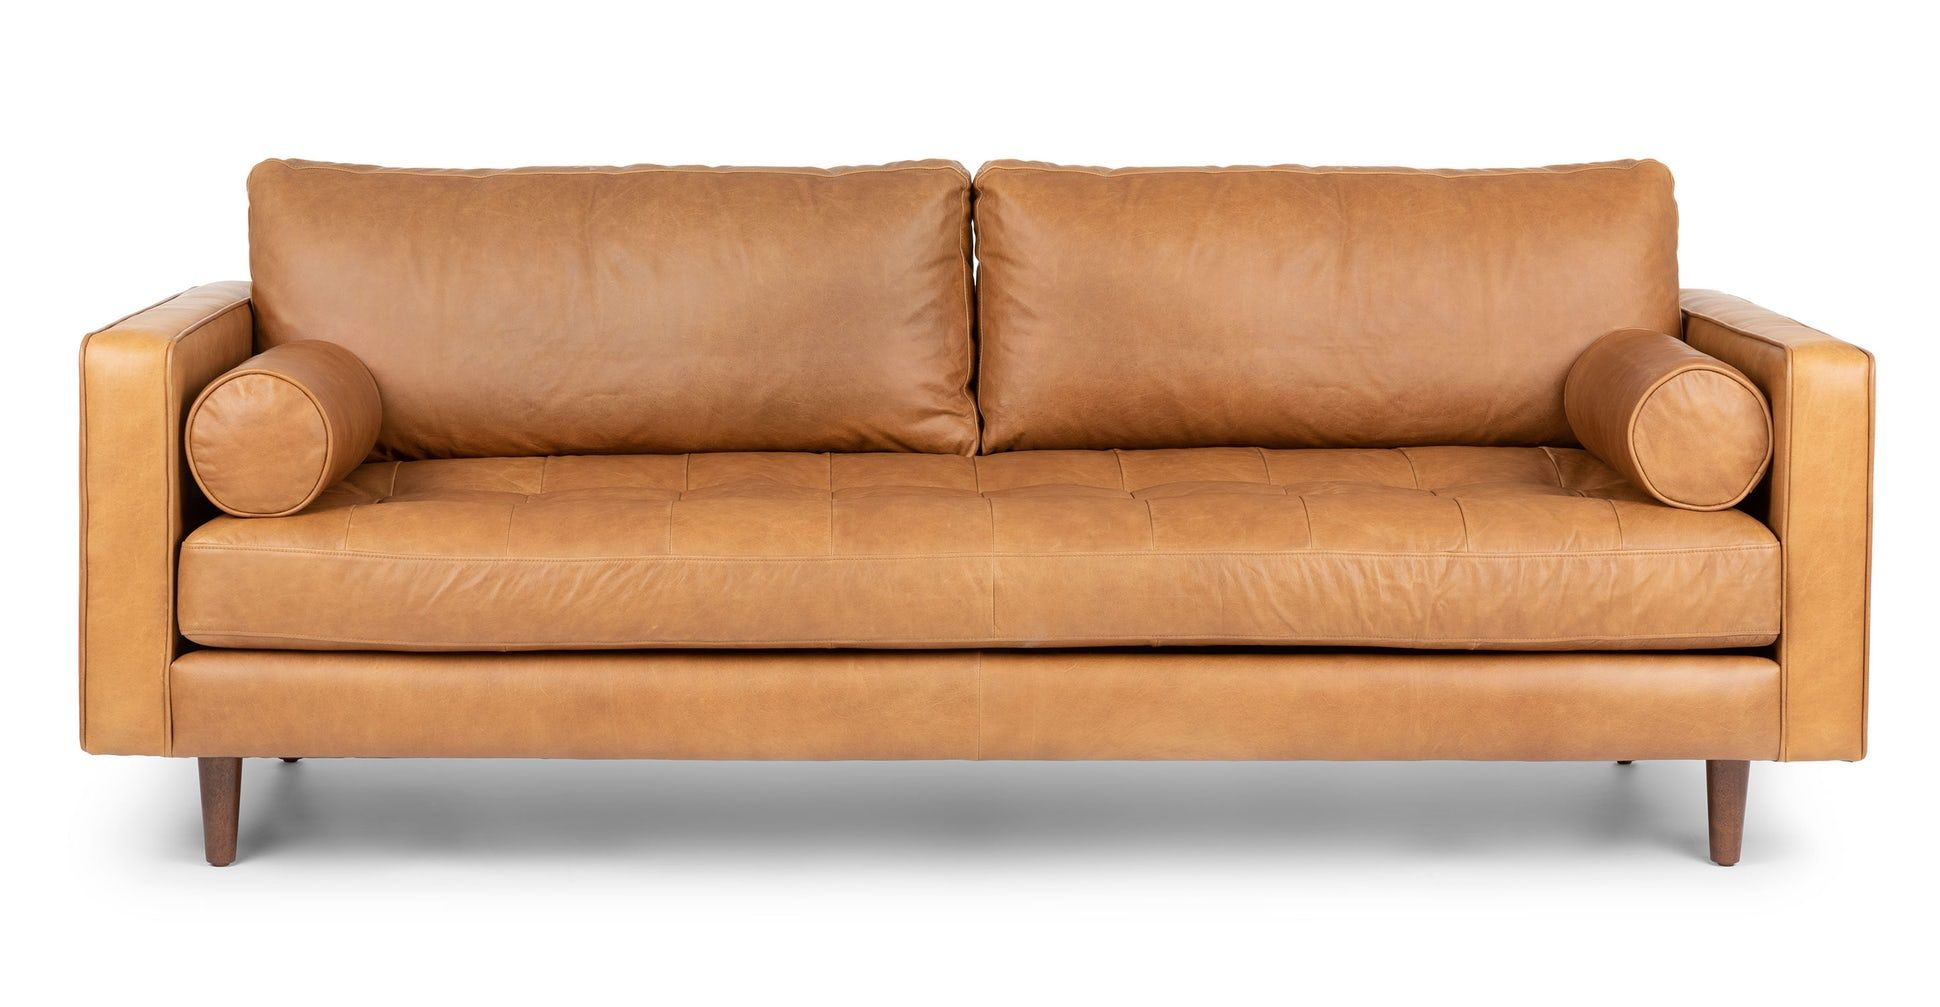 Sven Charme Tan Sofa In 2020 Tan Sofa Tan Leather Sofas Scandinavian Furniture